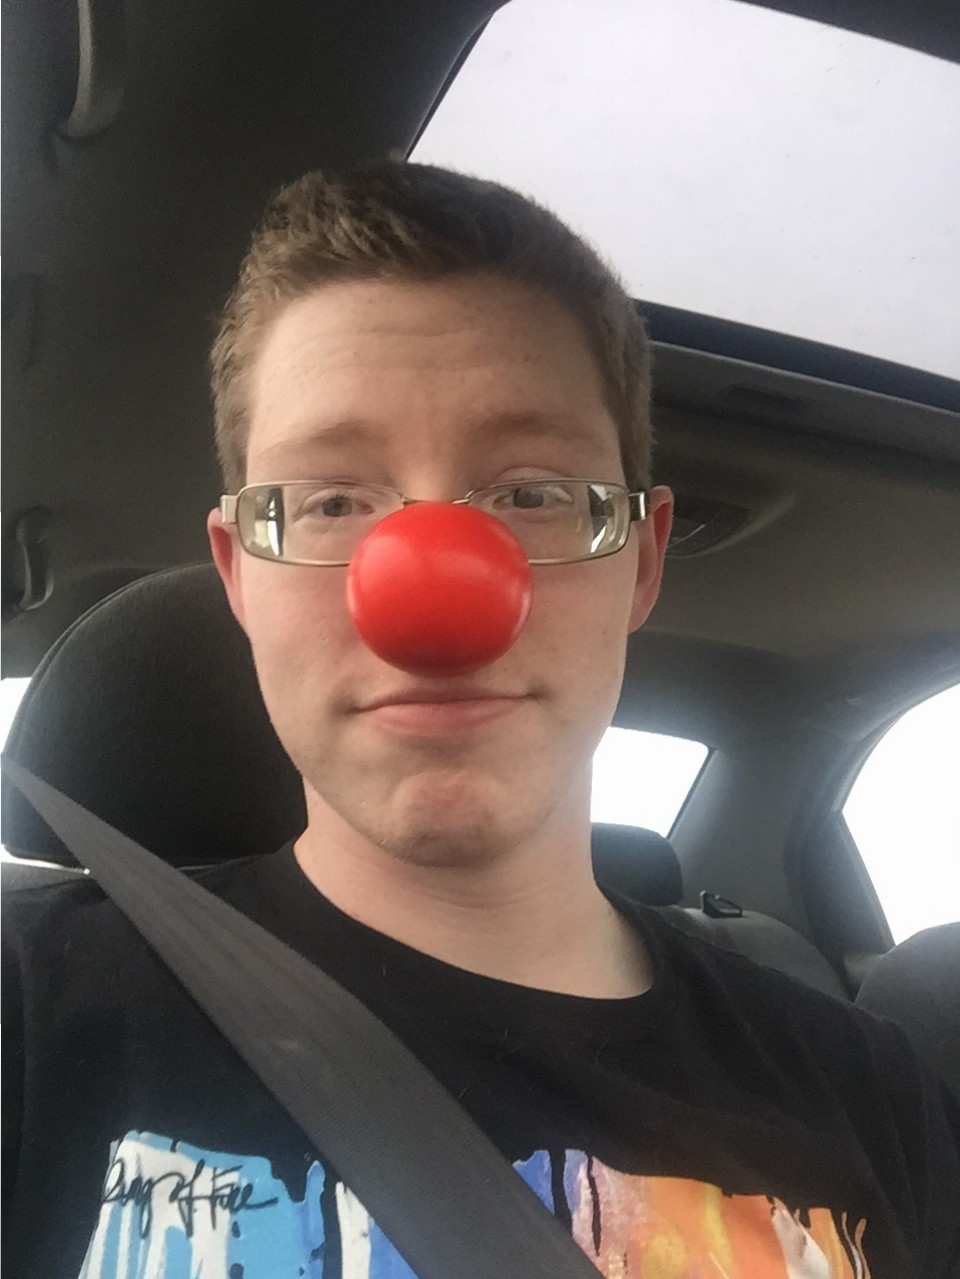 Just me with a red nose